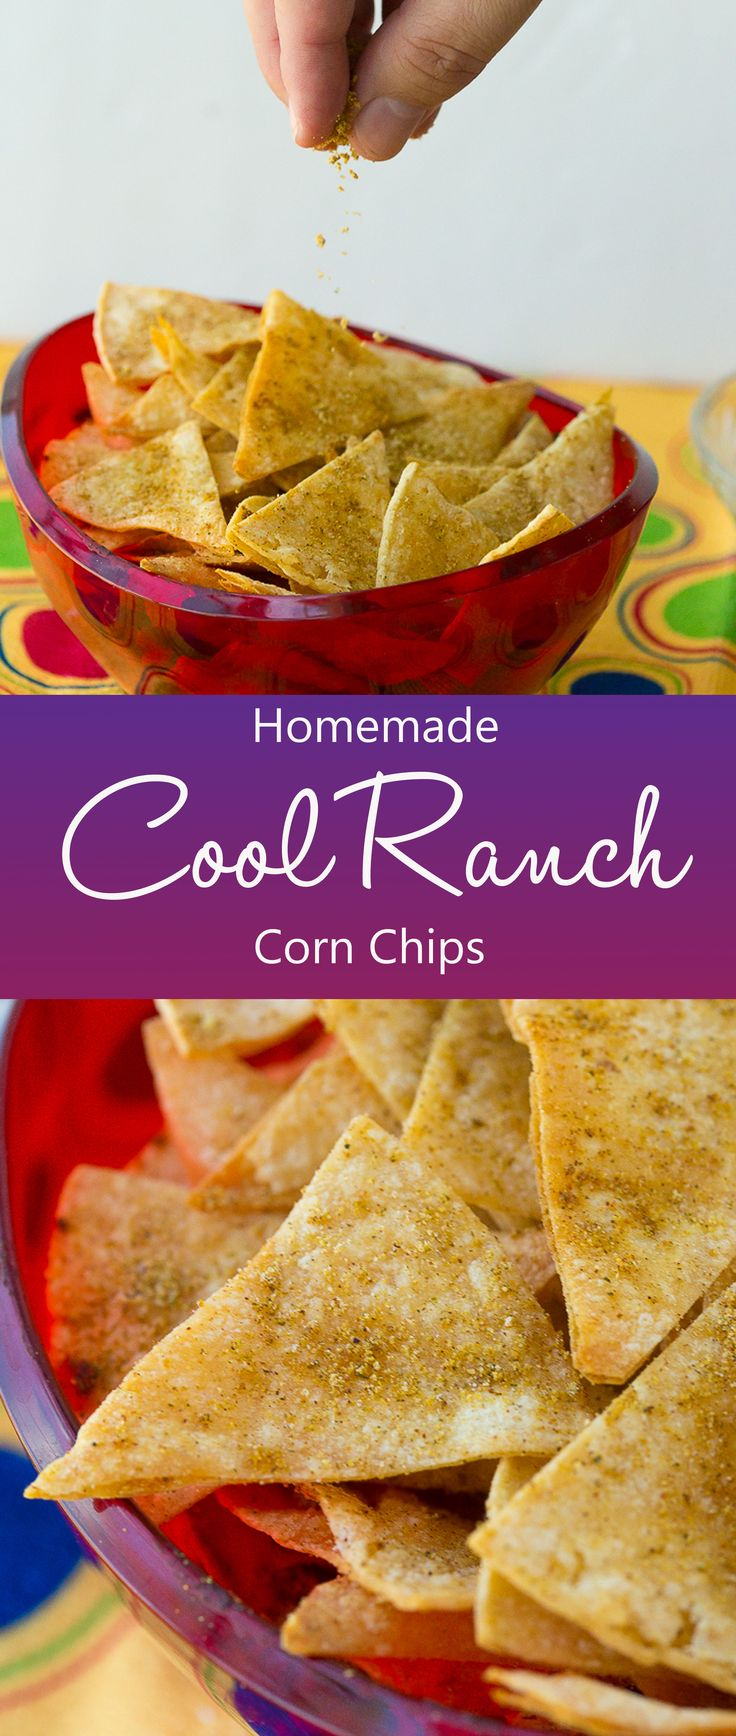 Healthy Homemade Cool Ranch Corn Chips are a healthy snack recipe that are reminiscent of the ever popular Cool Ranch Doritos, but you don't have to feel guilty about serving them to your kids! The perfect chip recipe for game day dips! Yay for football food!